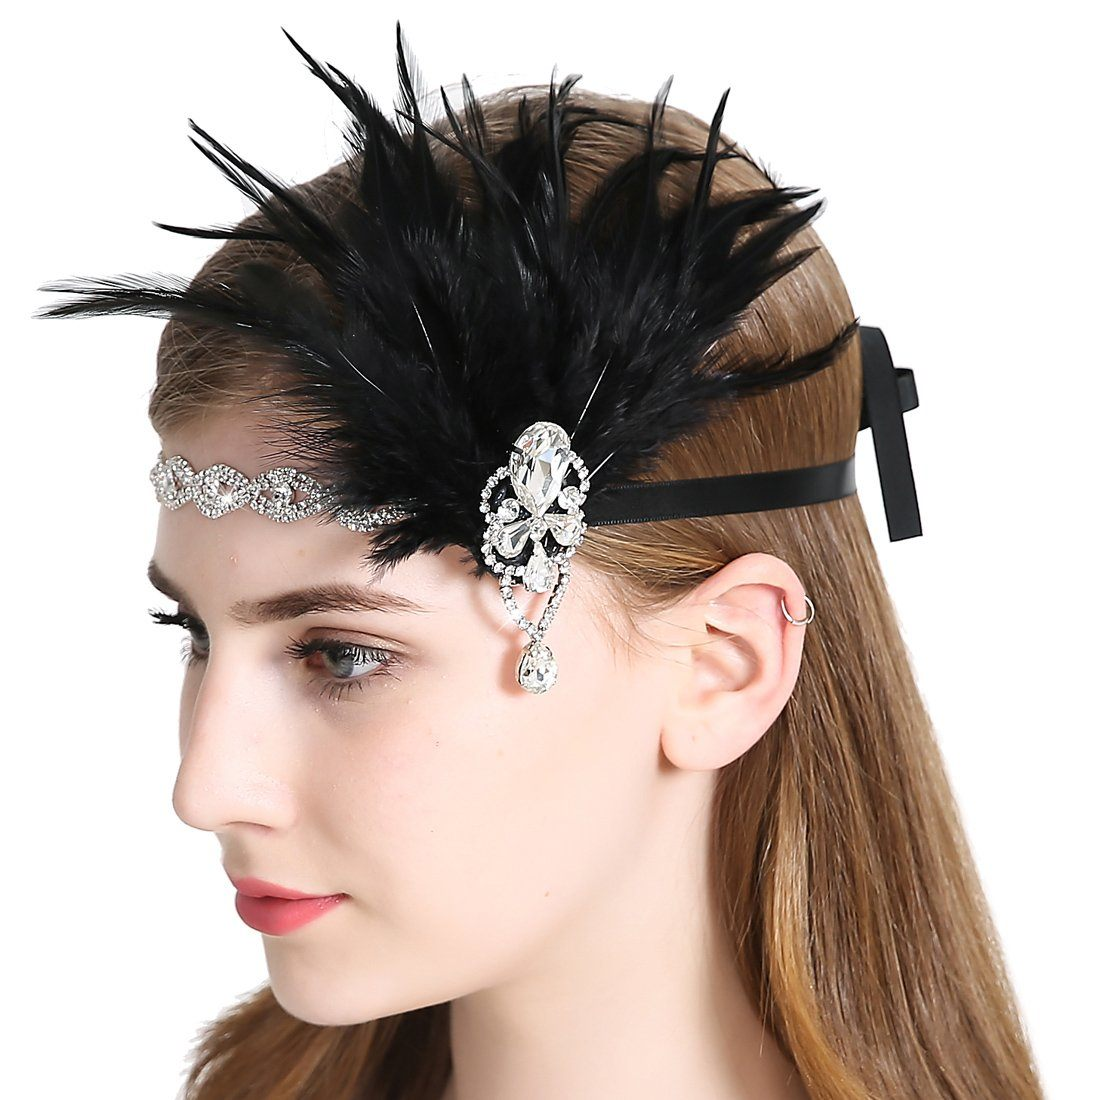 Vintage 1920s Flapper Headband Roaring 20s Great Gatsby Headpiece